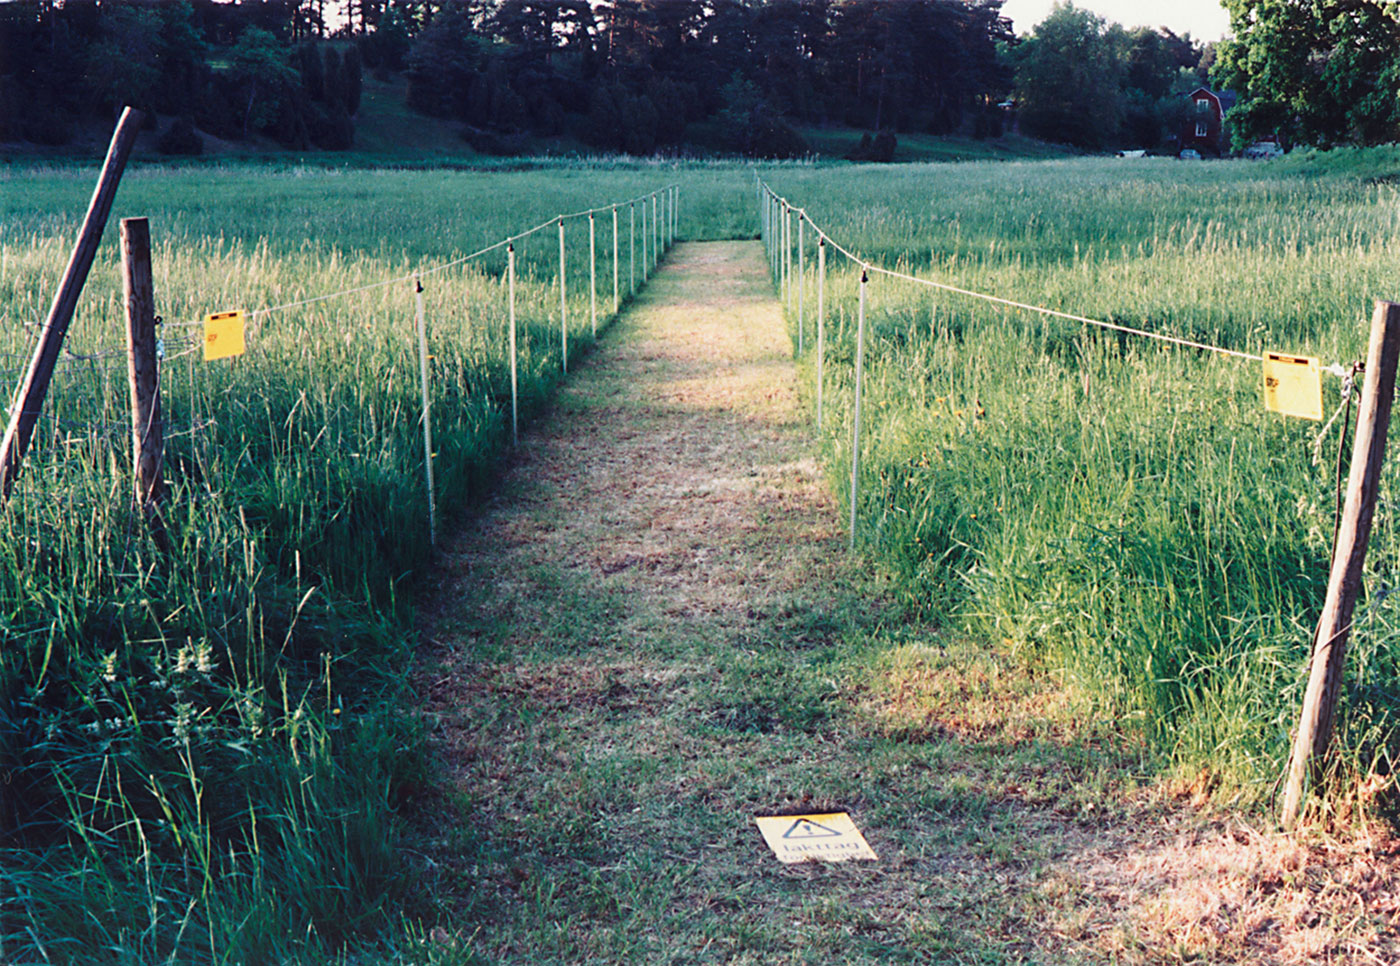 A path is leading out to a field, well-cut, easy to walk.